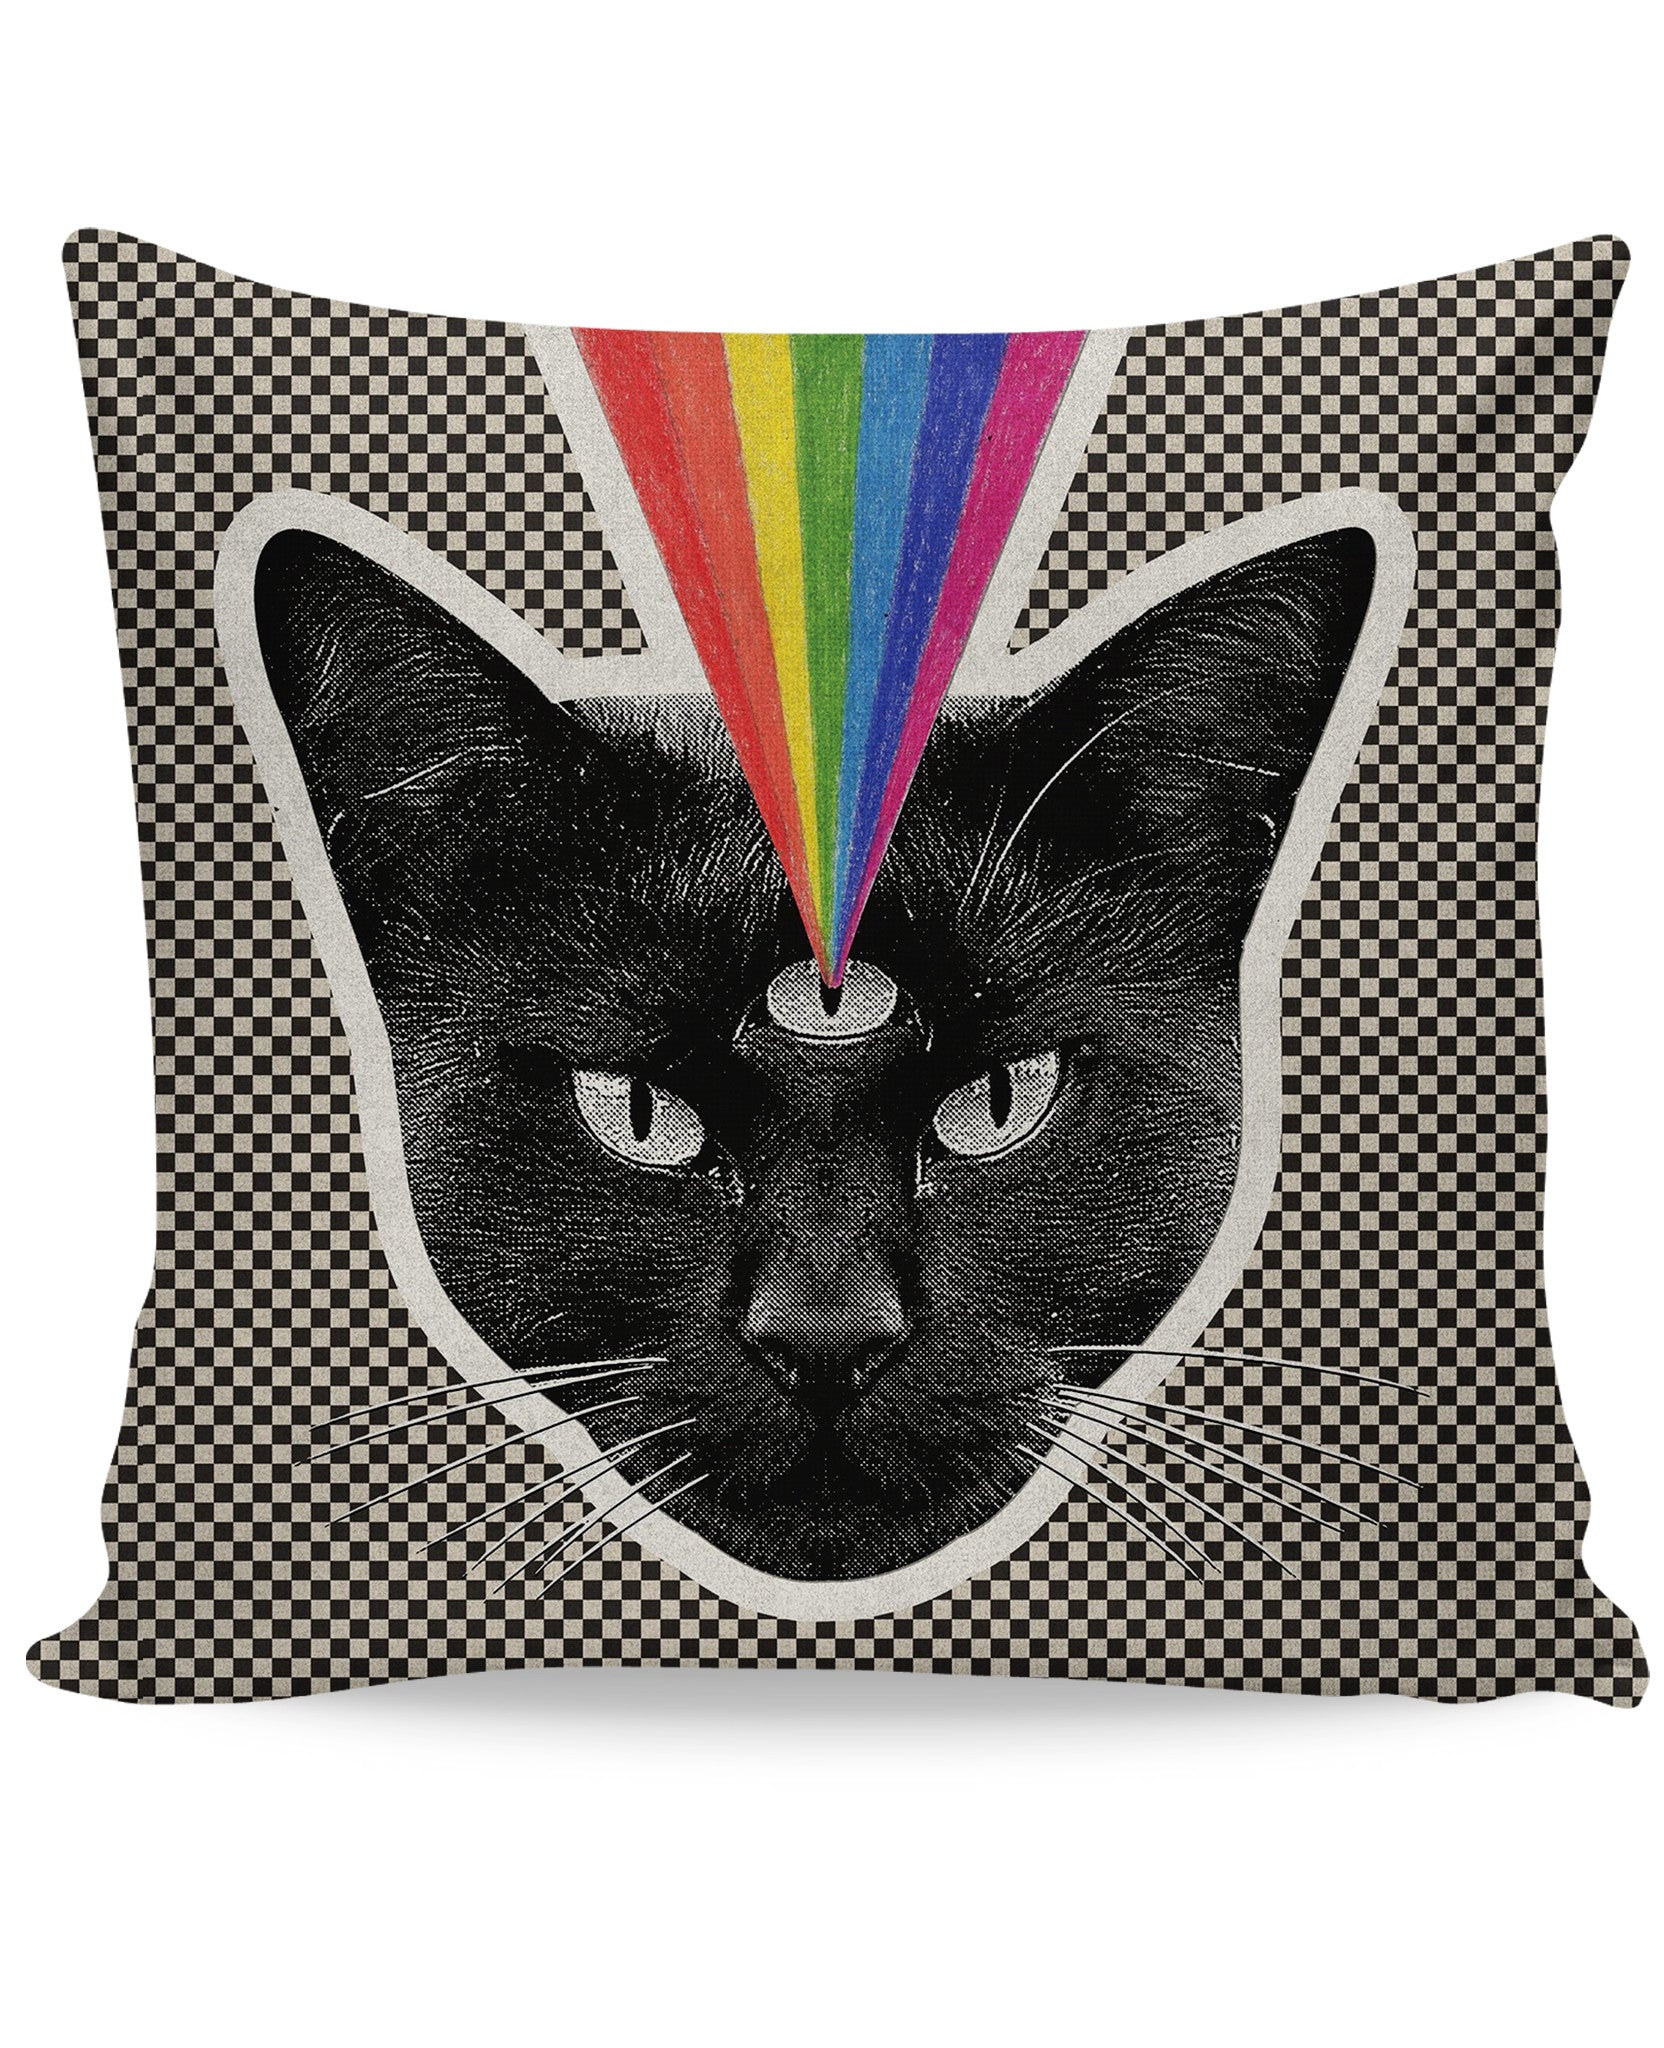 Checker Black Cat Couch Pillow